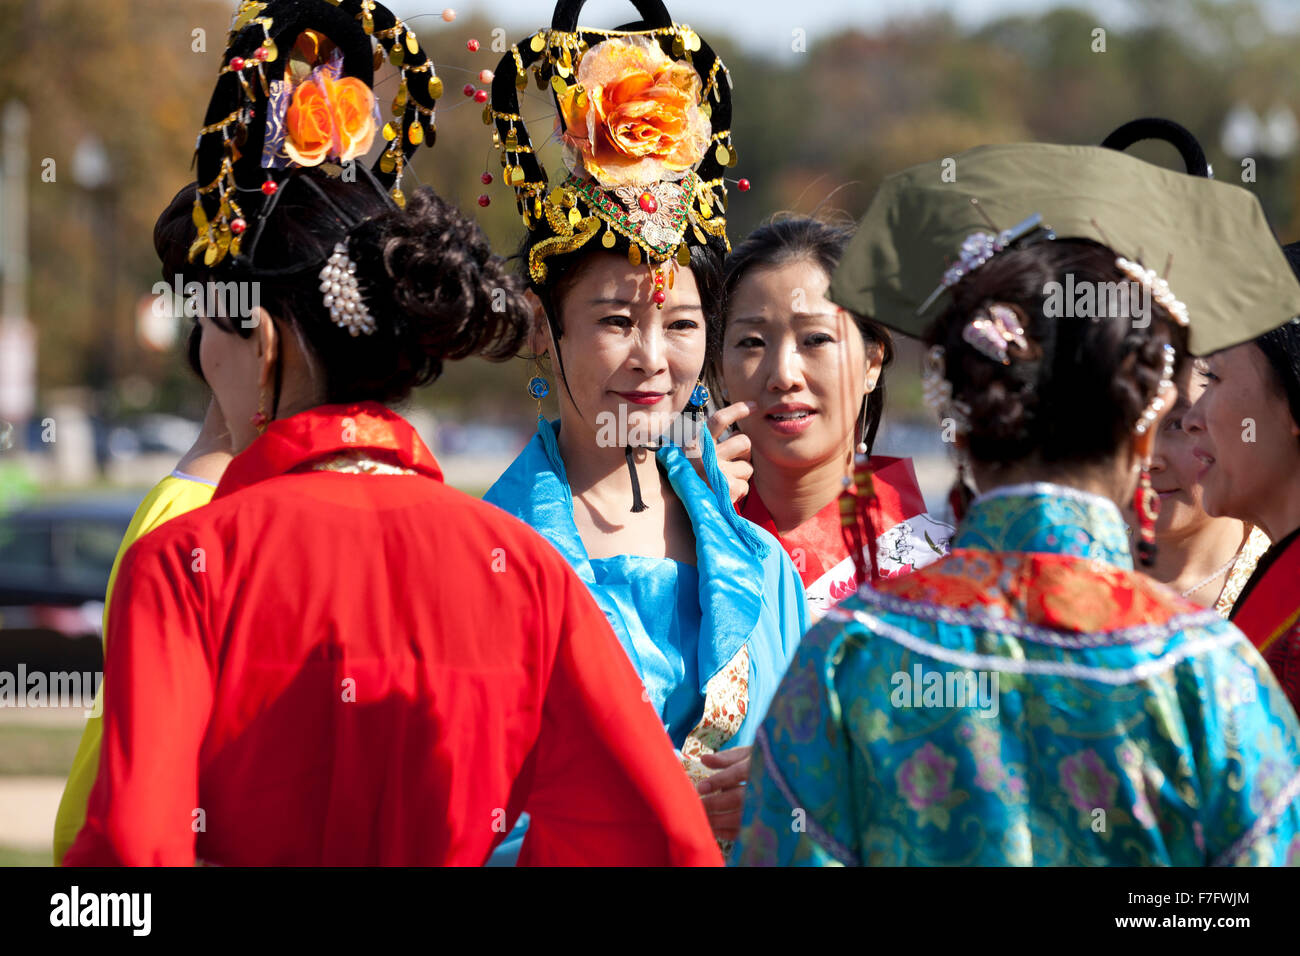 Female Chinese traditional dance performers in costume at Asian festival - USA - Stock Image